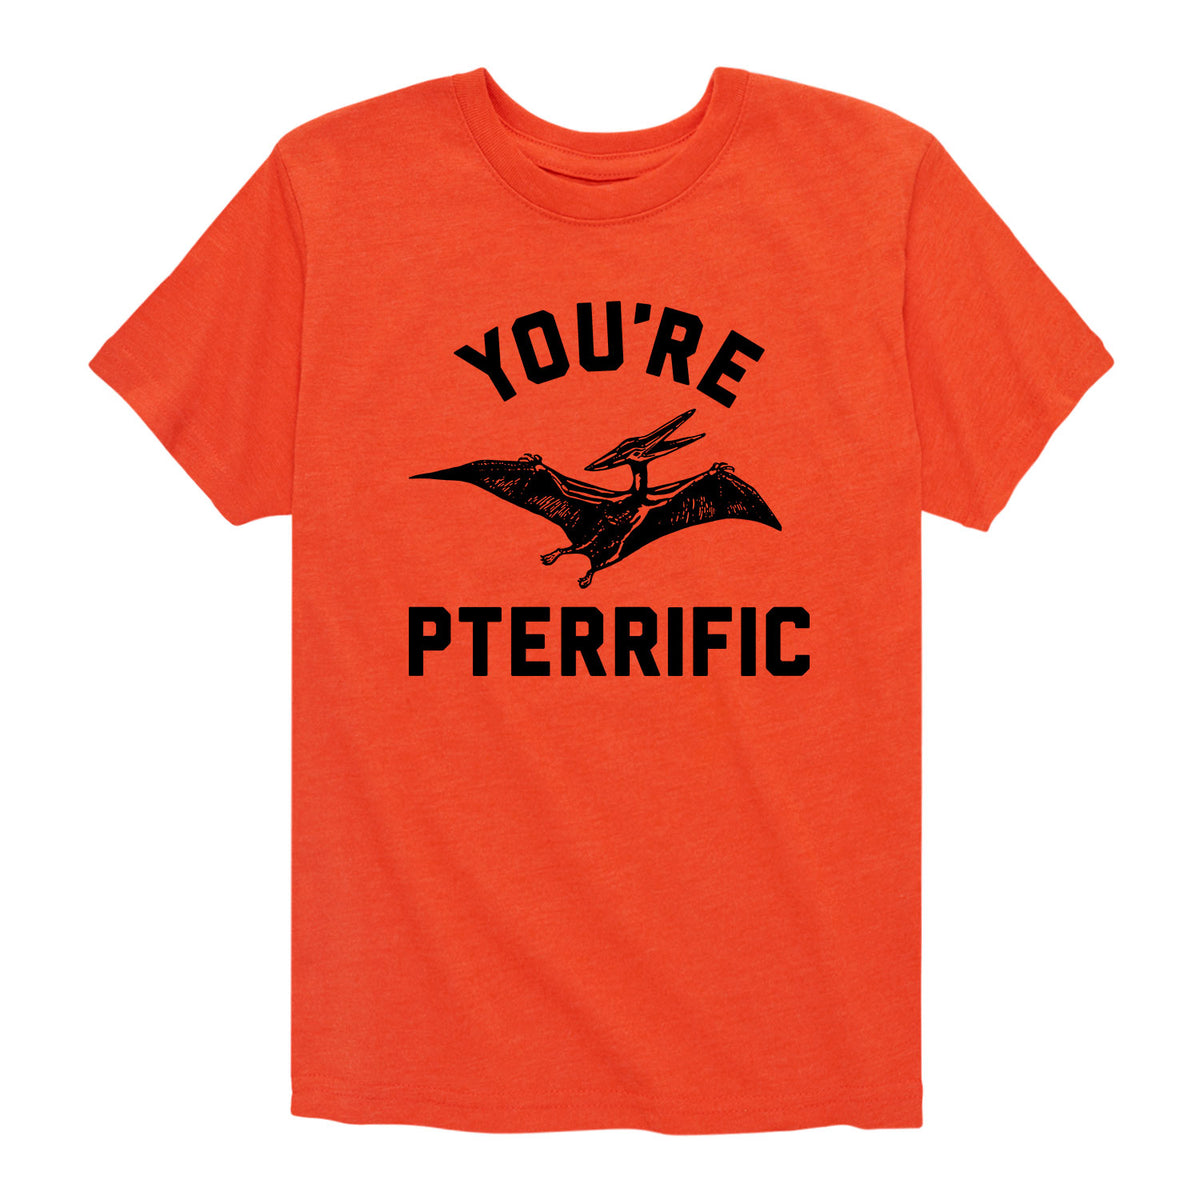 You're Pterrific - Youth & Toddler Short Sleeve T-Shirt